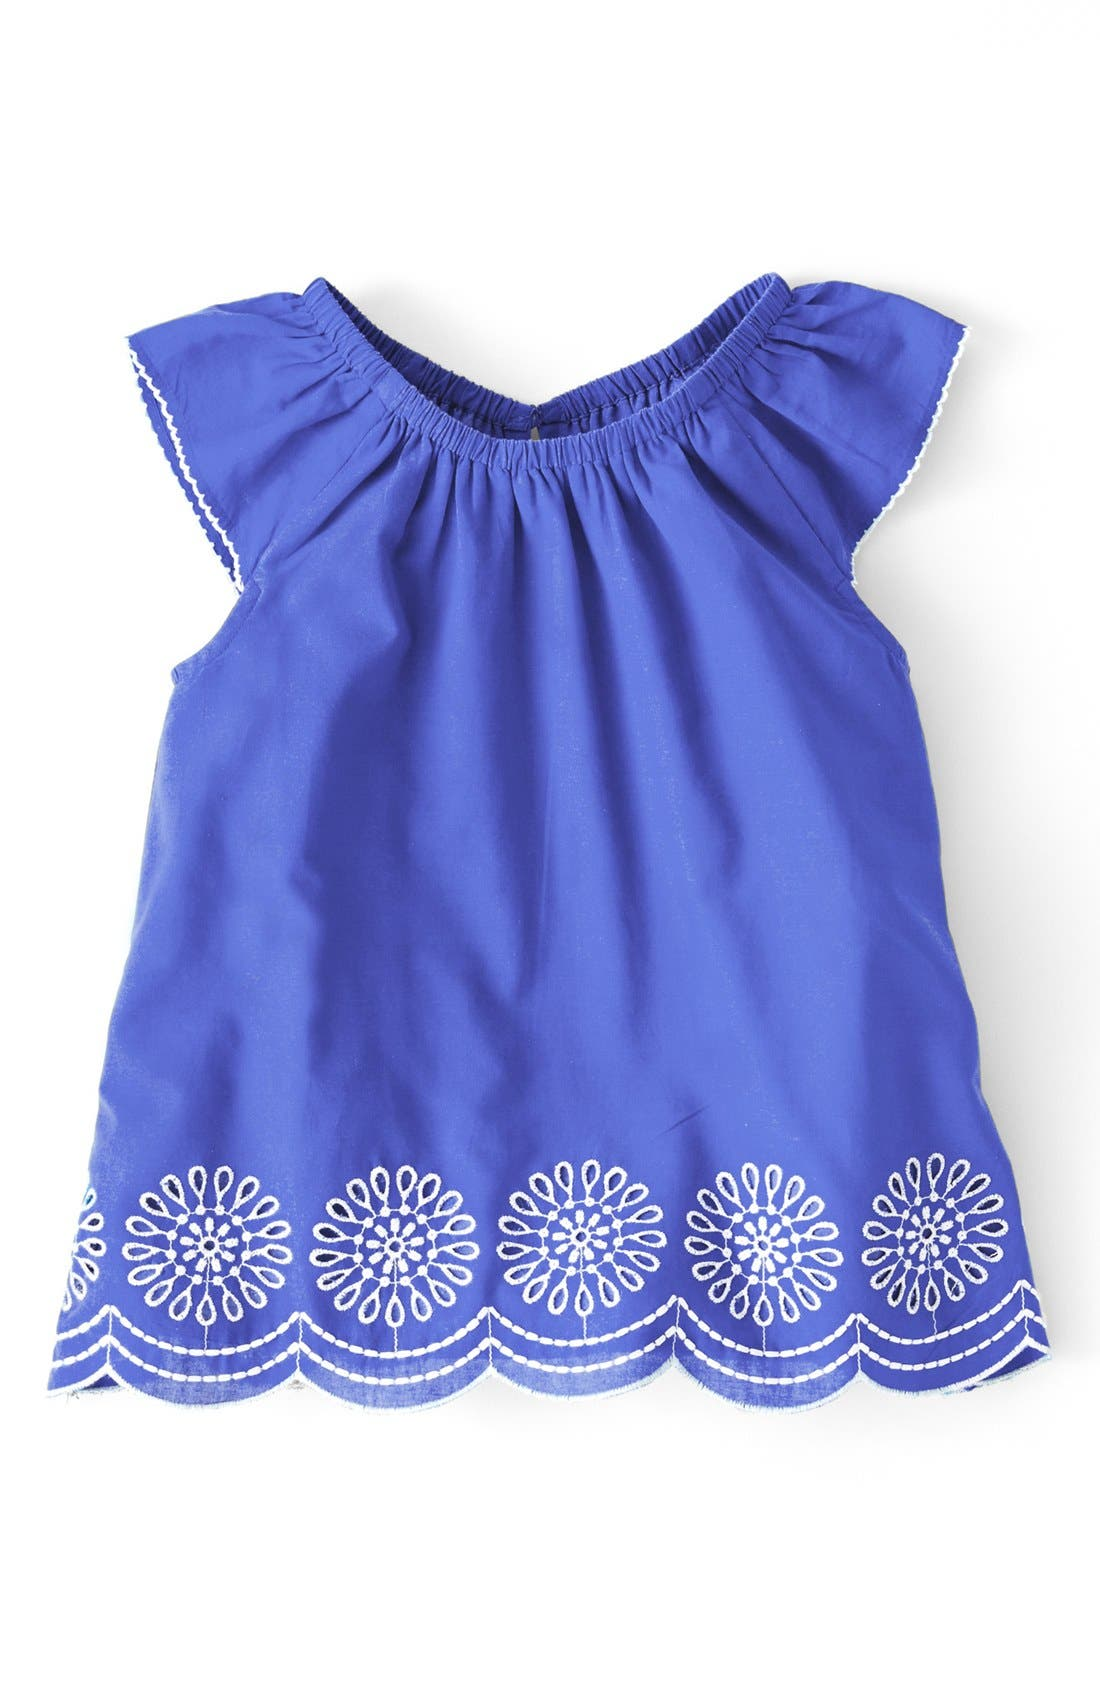 Main Image - Mini Boden 'Broderie' Cotton Cambric A-Line Top (Little Girls & Big Girls)